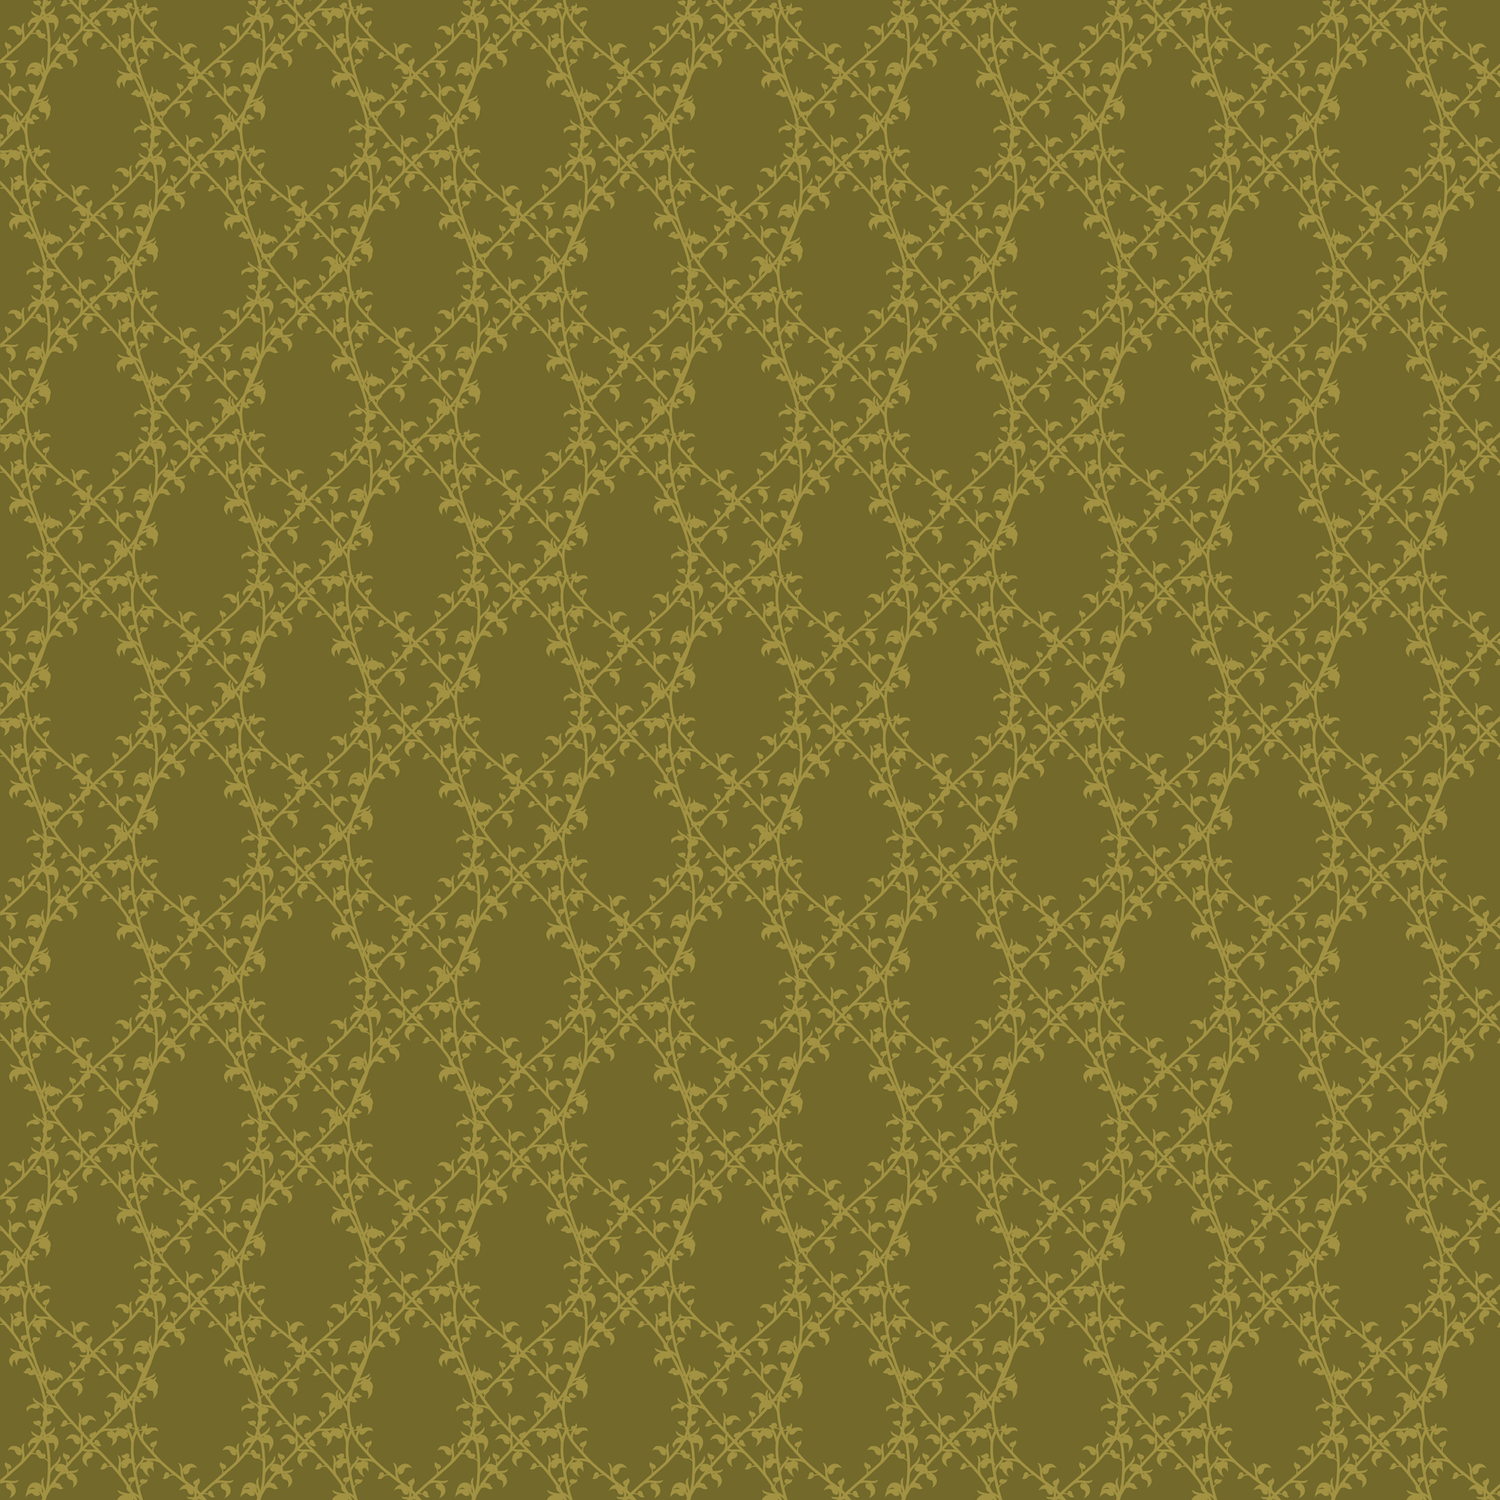 Gold-vines-with-chartreuse-back for website.png